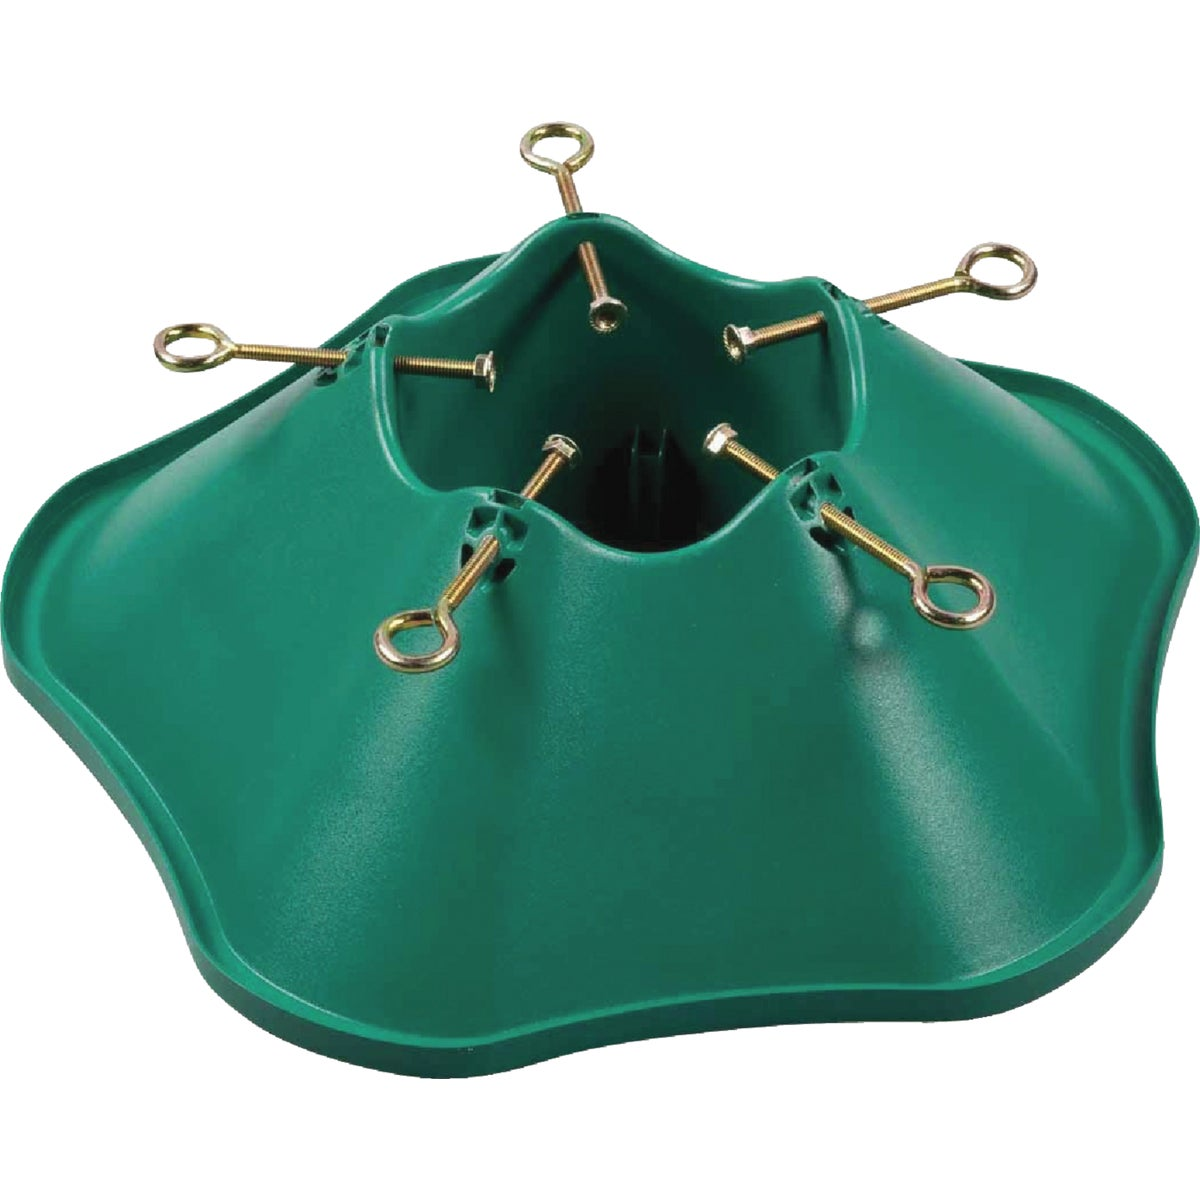 .75 GAL PLASTIC STAND - 508-ST by Jack Post   Chr Dom